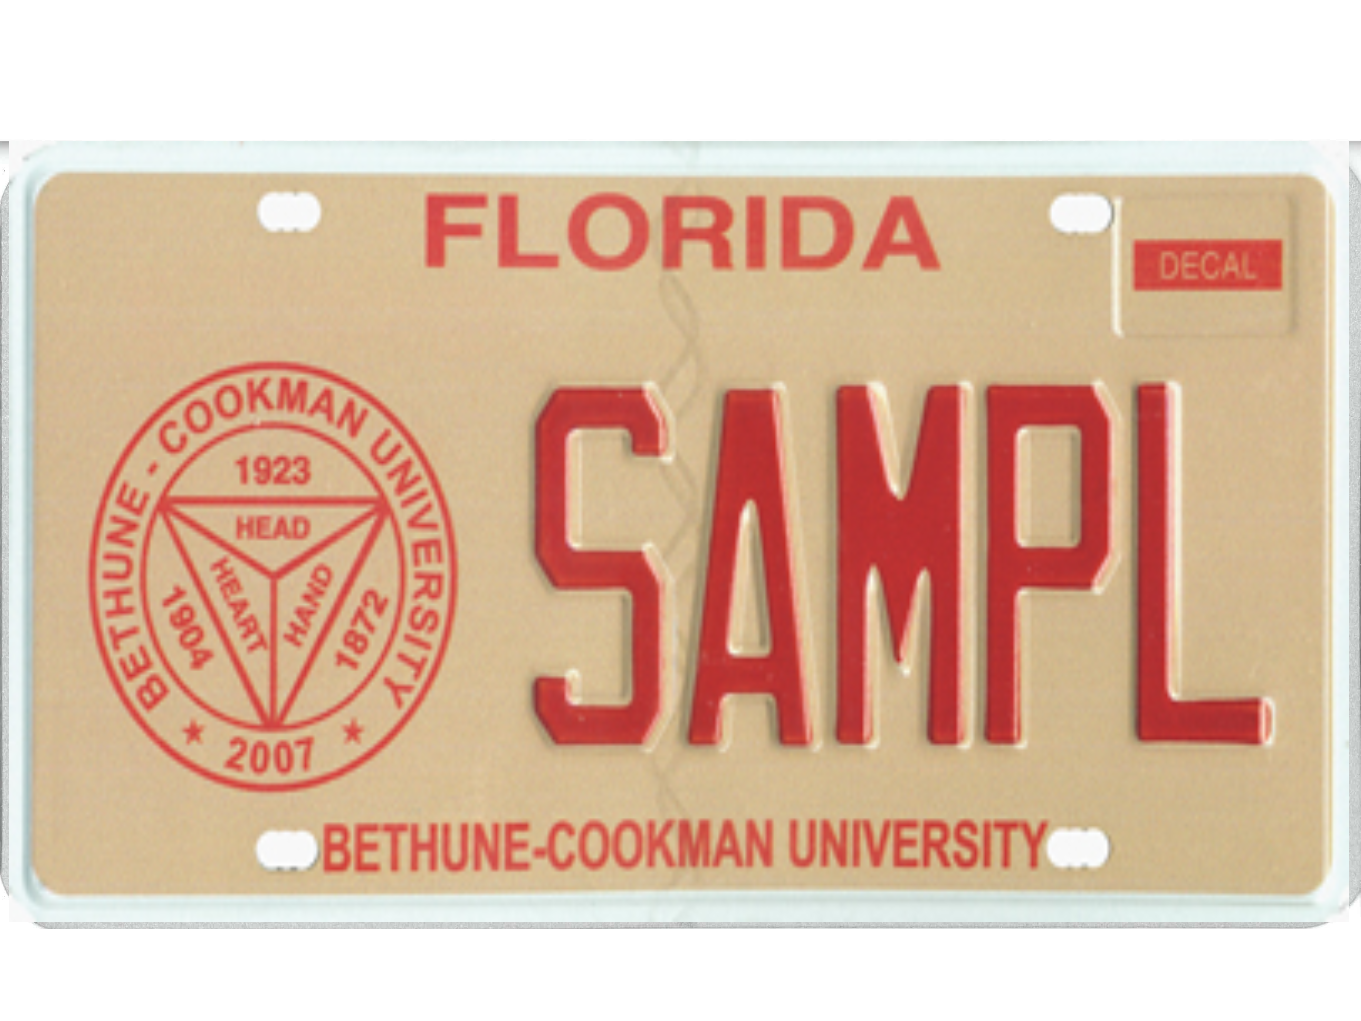 The Bethune-Cookman University license plate.